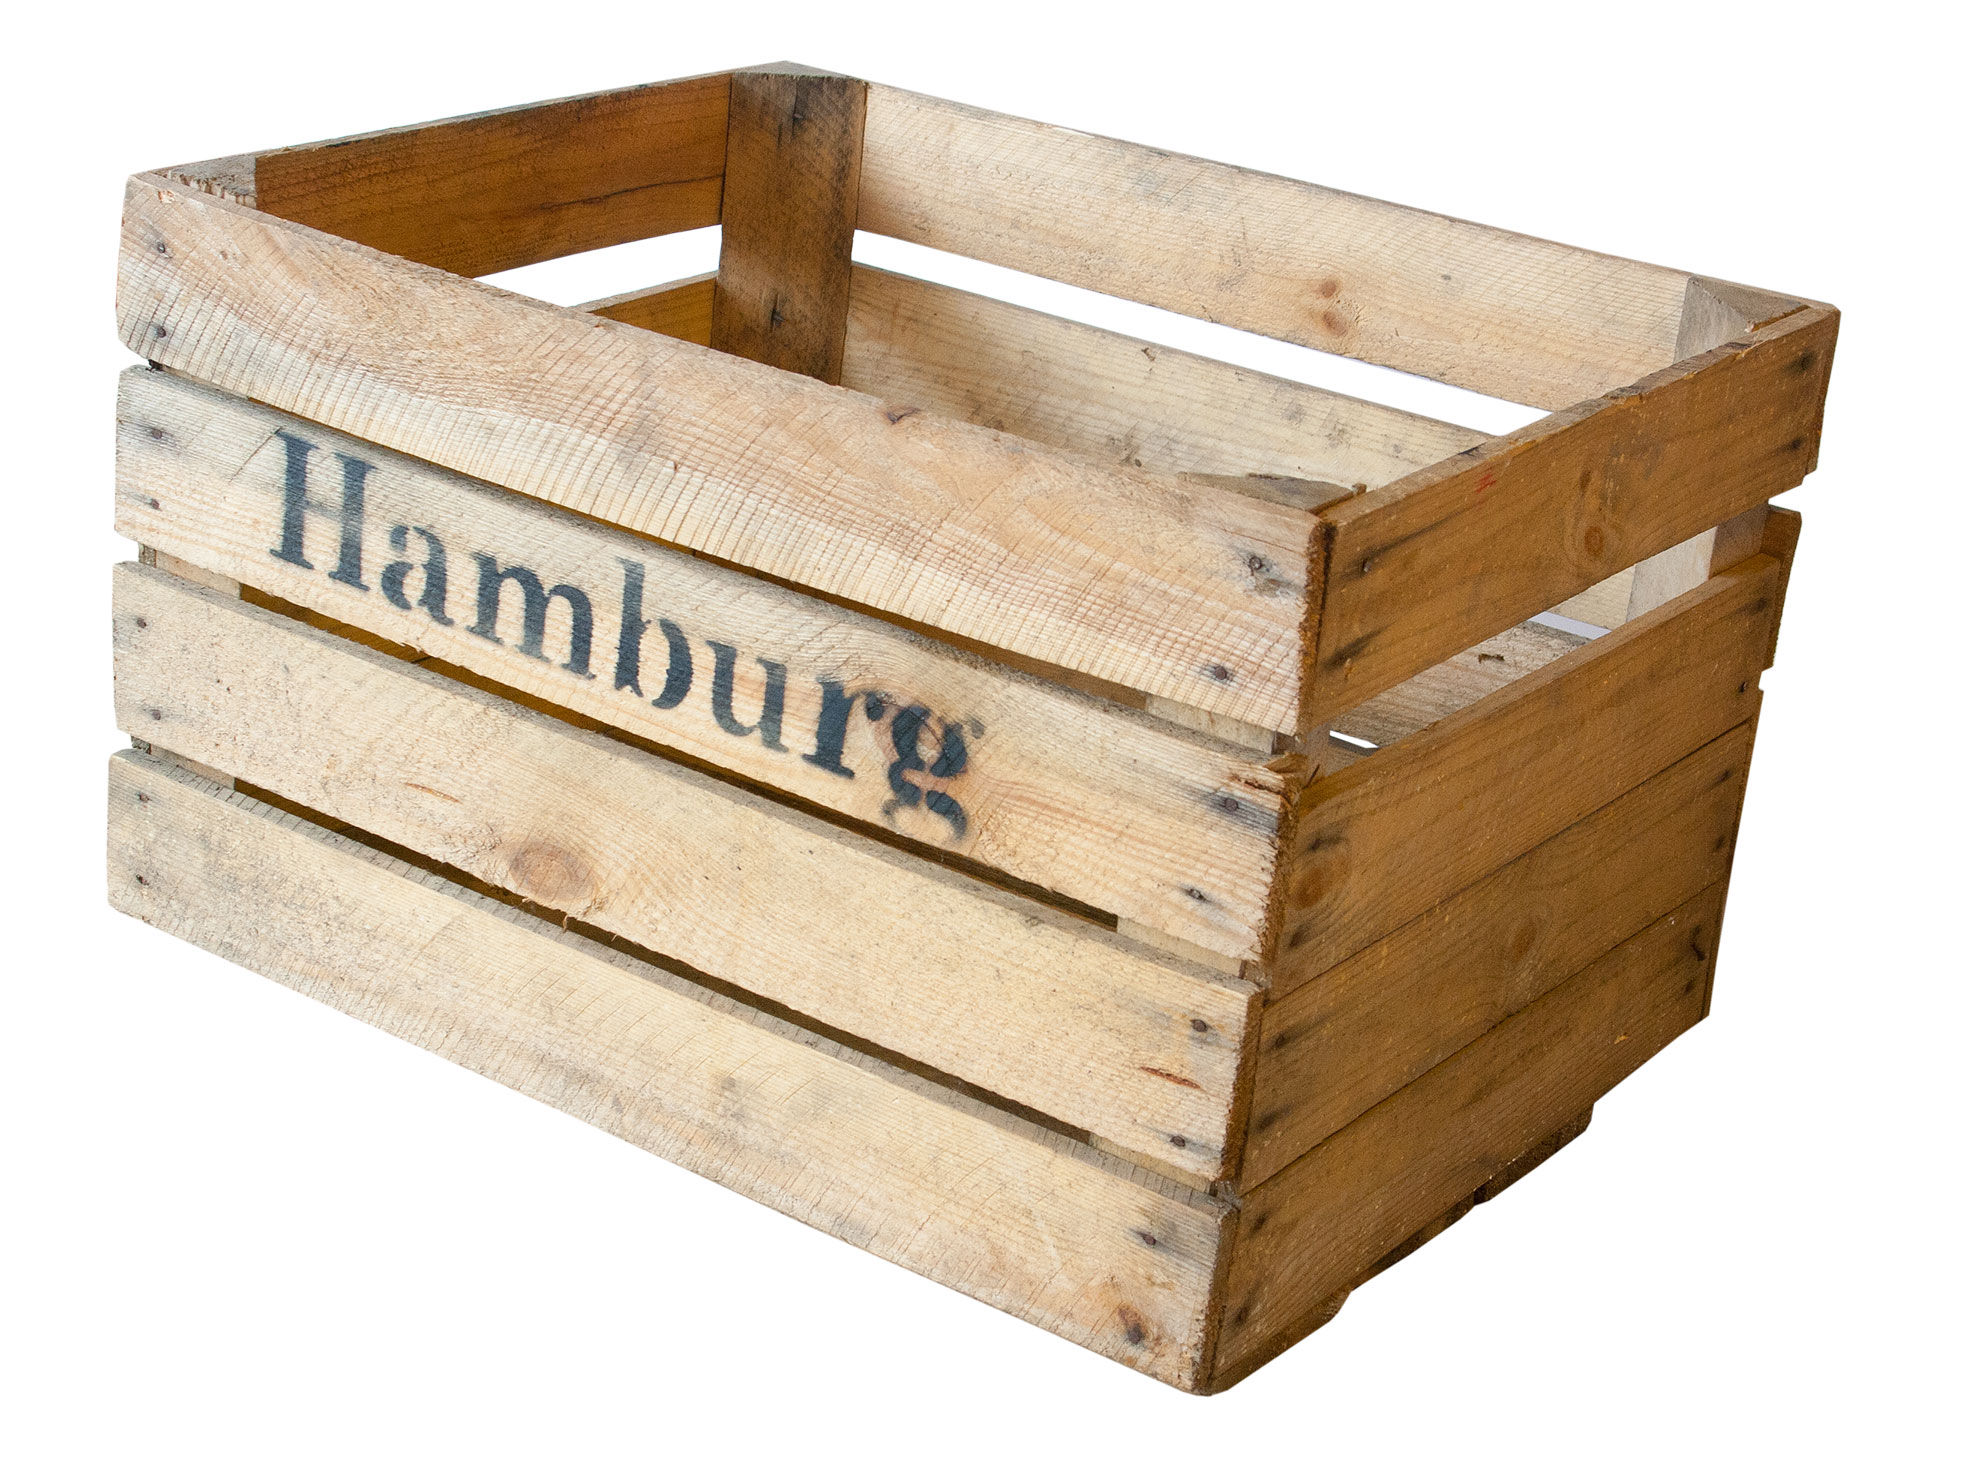 holzkisten apfelkiste hamburg natur 50x40x30cm. Black Bedroom Furniture Sets. Home Design Ideas